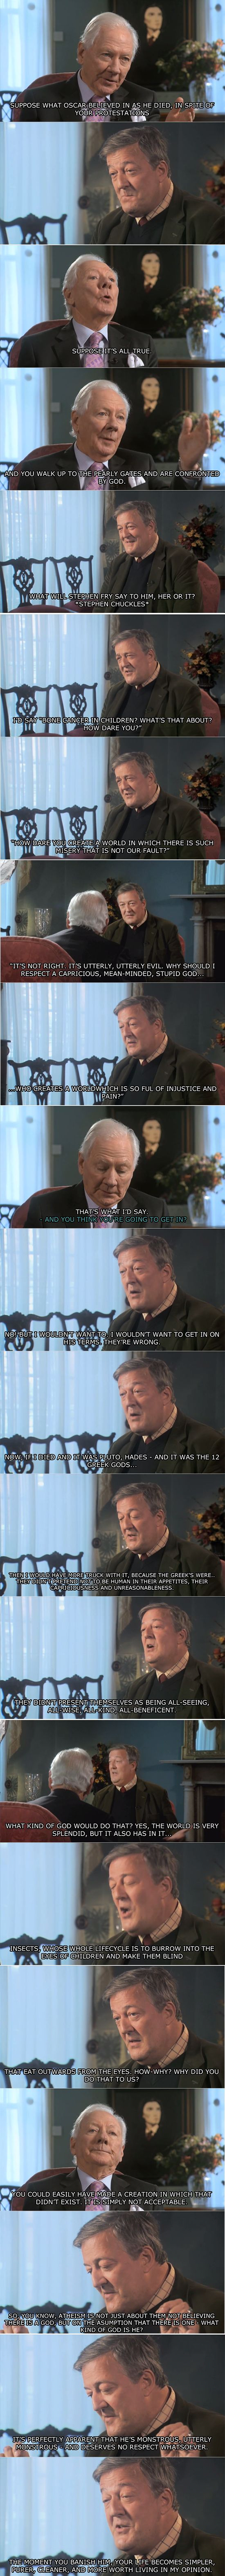 Stephen Fry on God (worth reading)